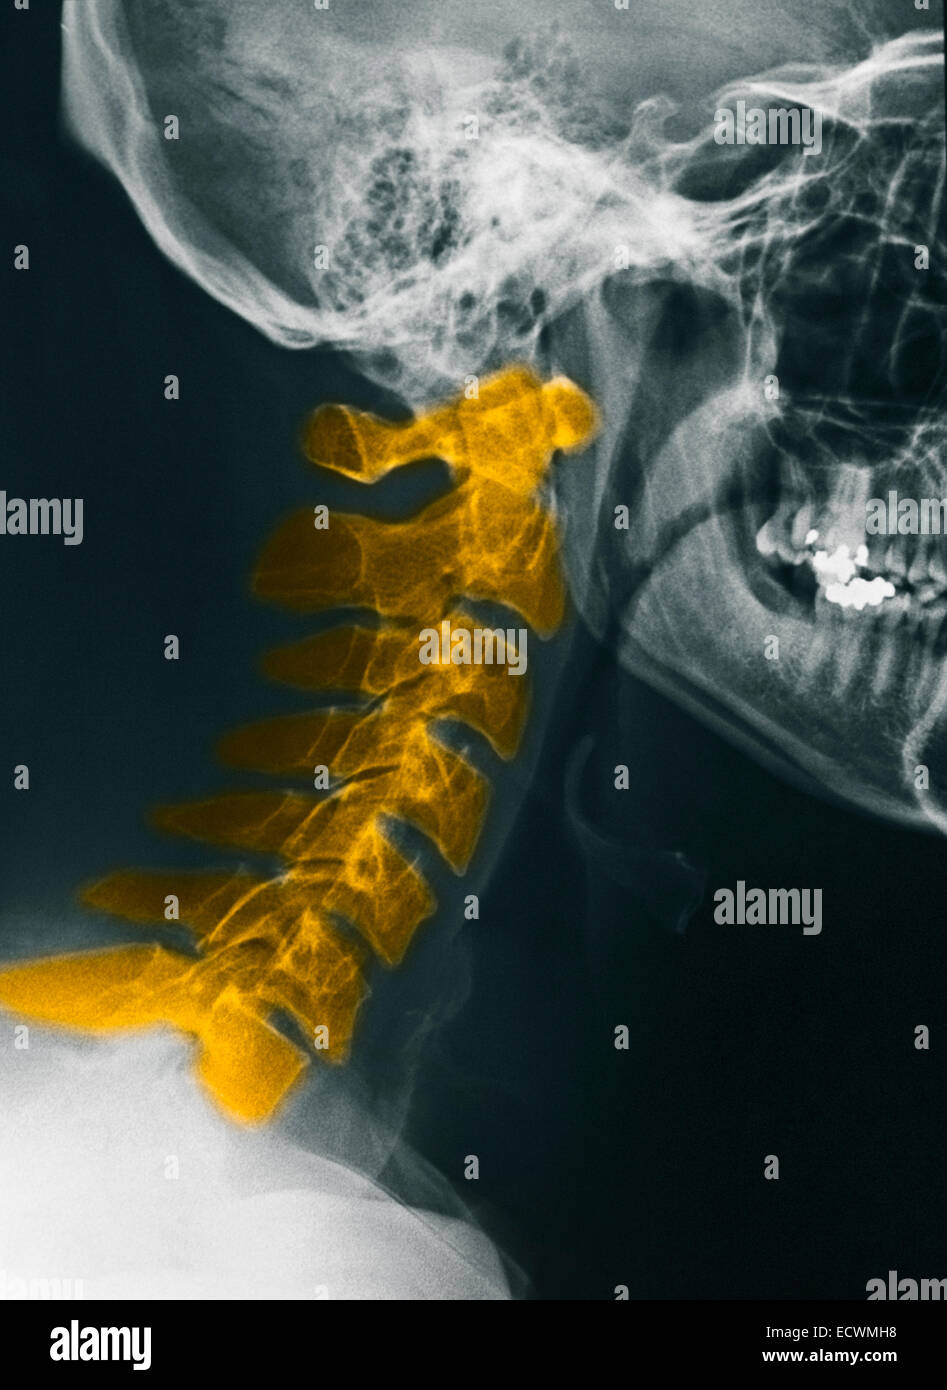 Normal cervical spine x-rays. - Stock Image